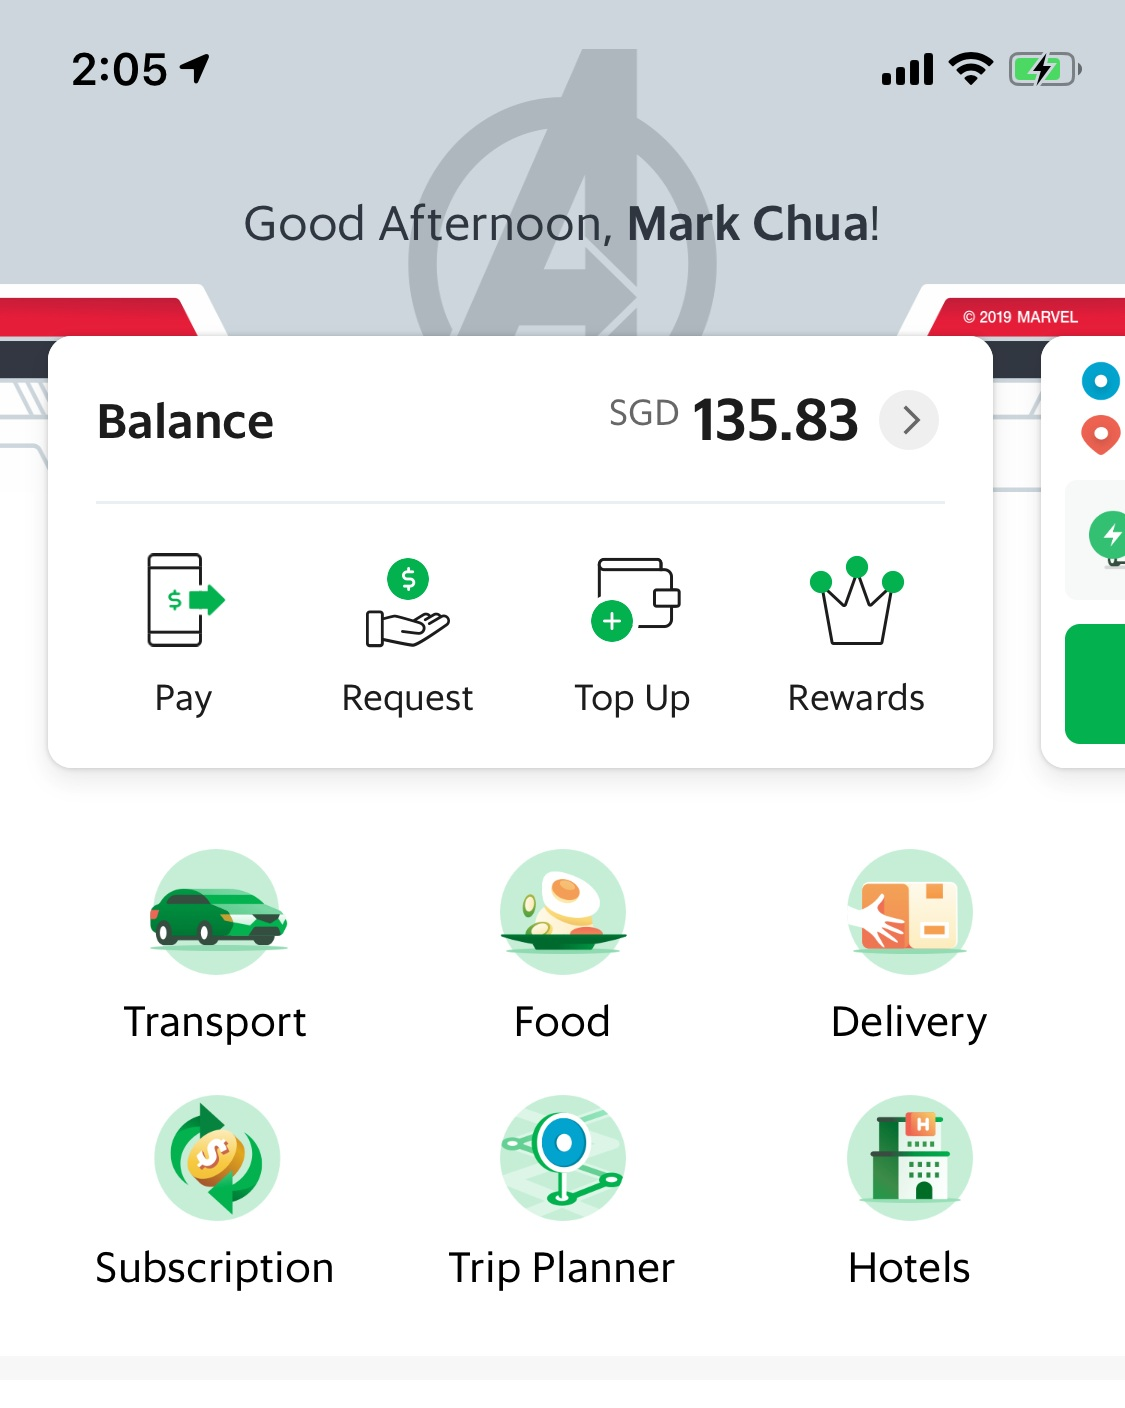 Grab to Add Four New Services to App - Hotel Booking, Video